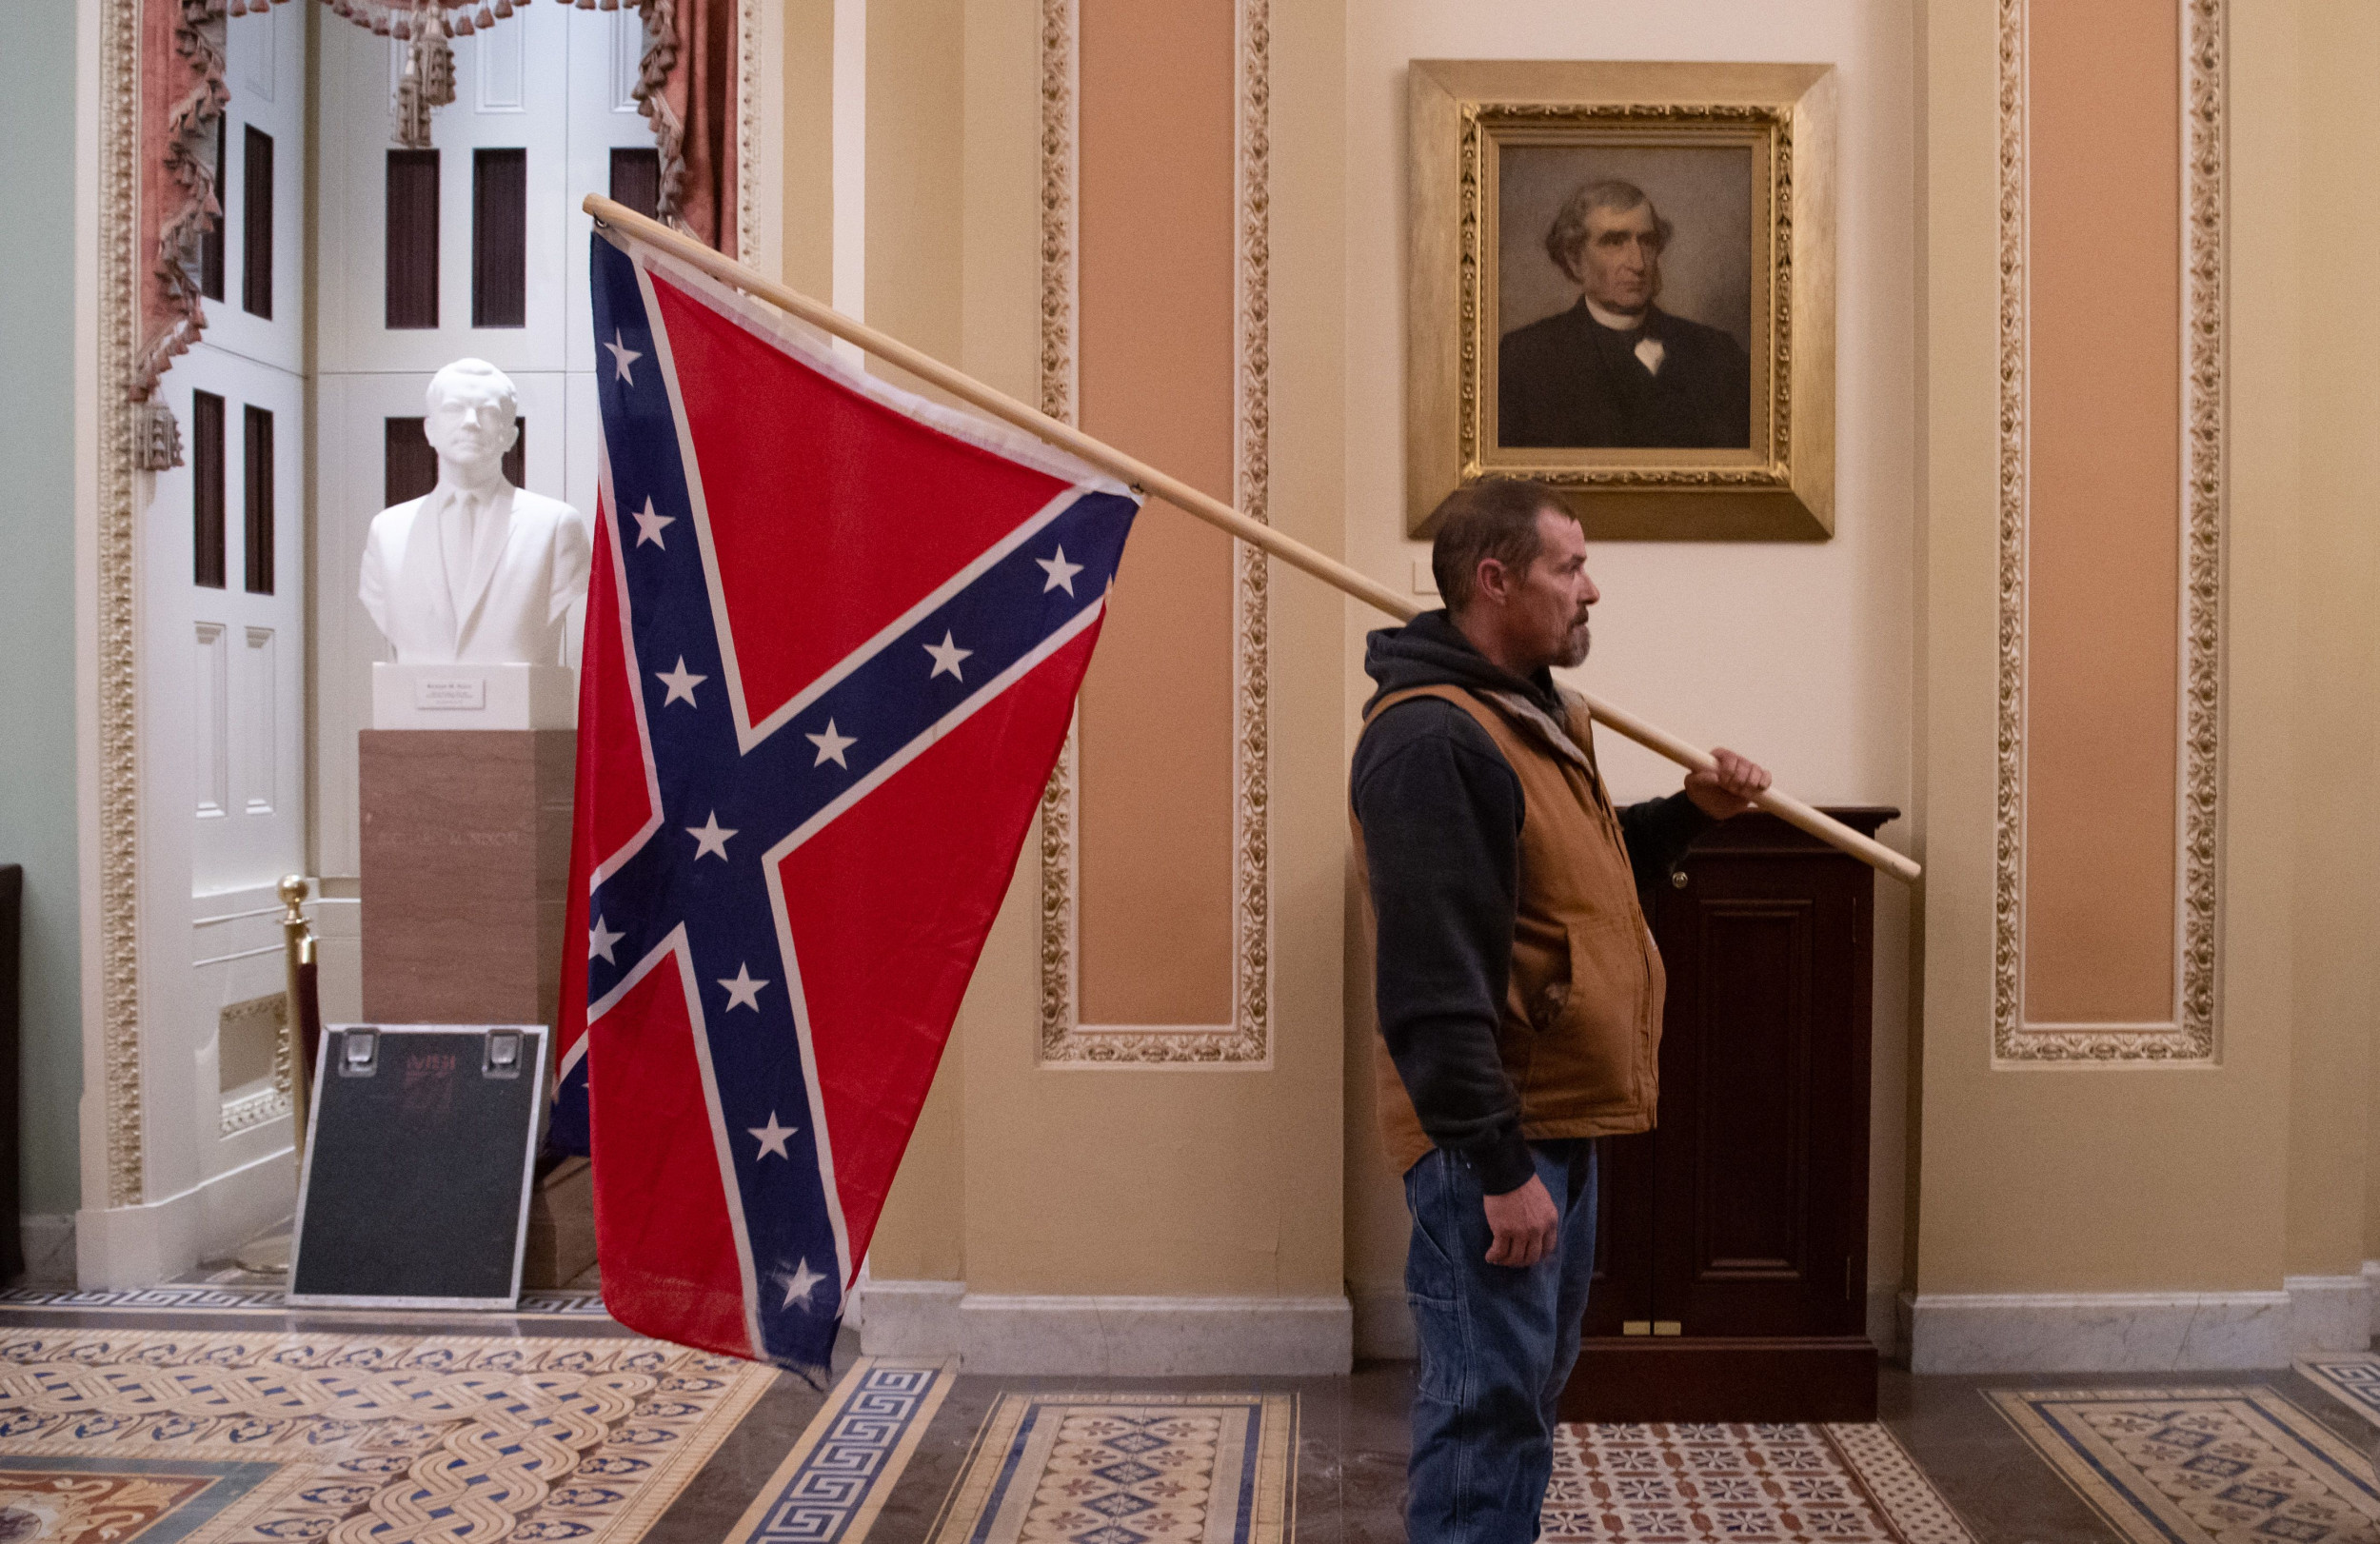 Kevin Seefried, Man Who Carried Confederate Flag During Capitol Riot, Arrested